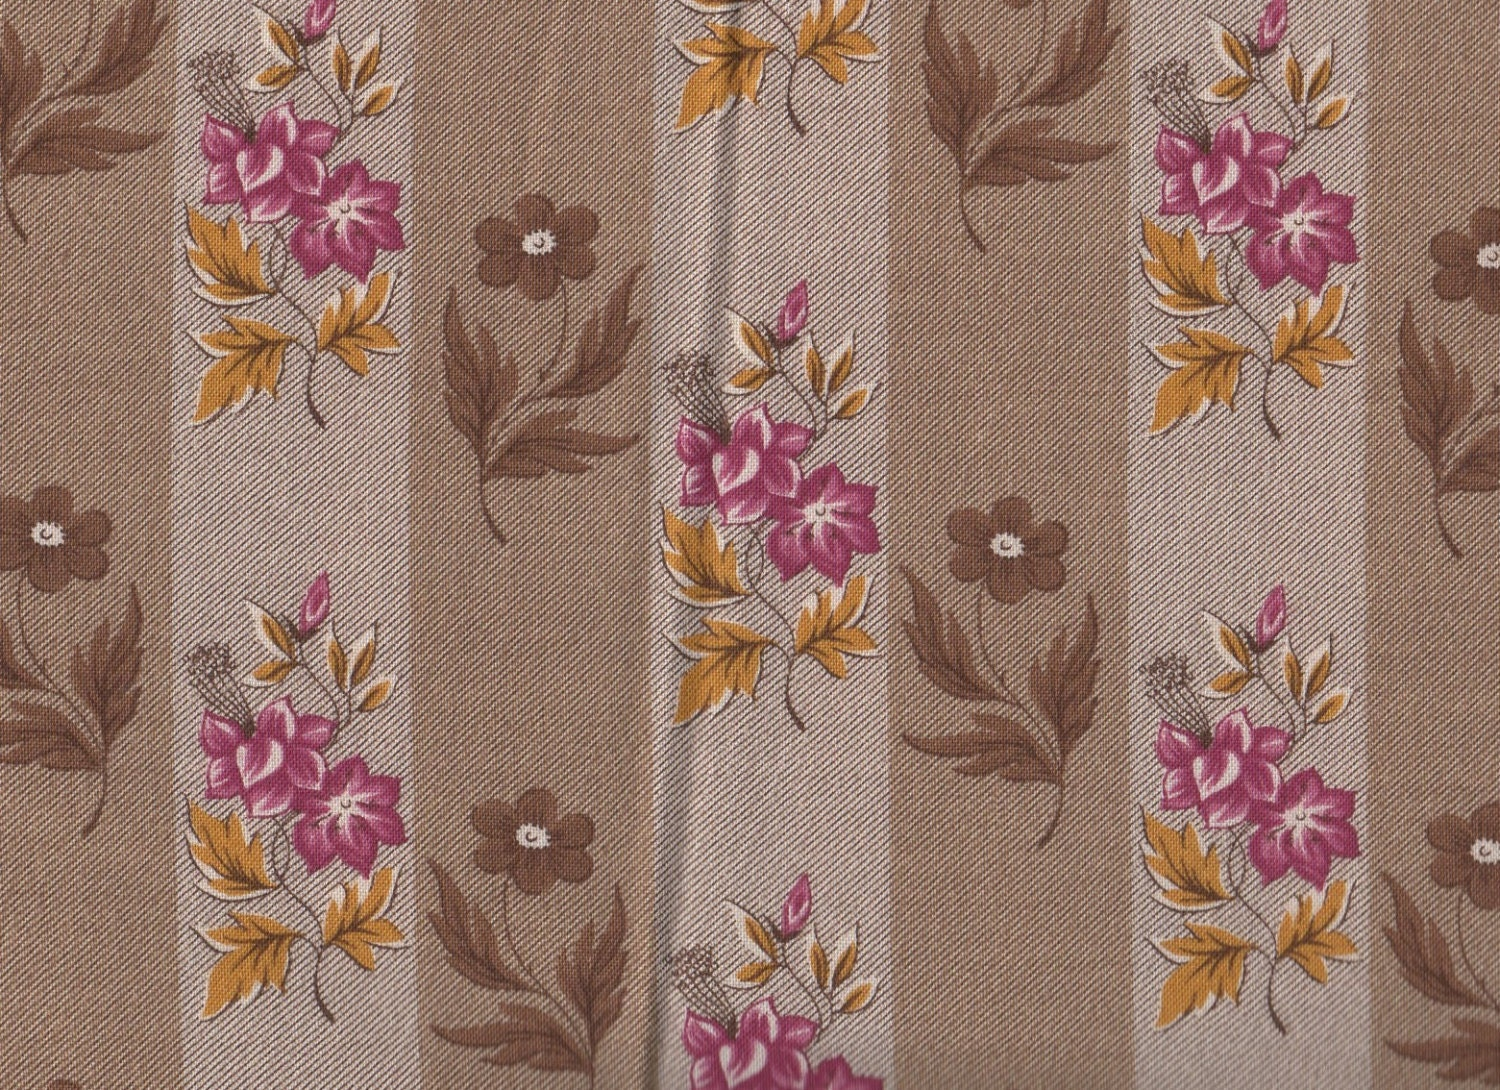 floral fabric  encore for free spirit  floral fabric  flower stripes  floral print  01654 from